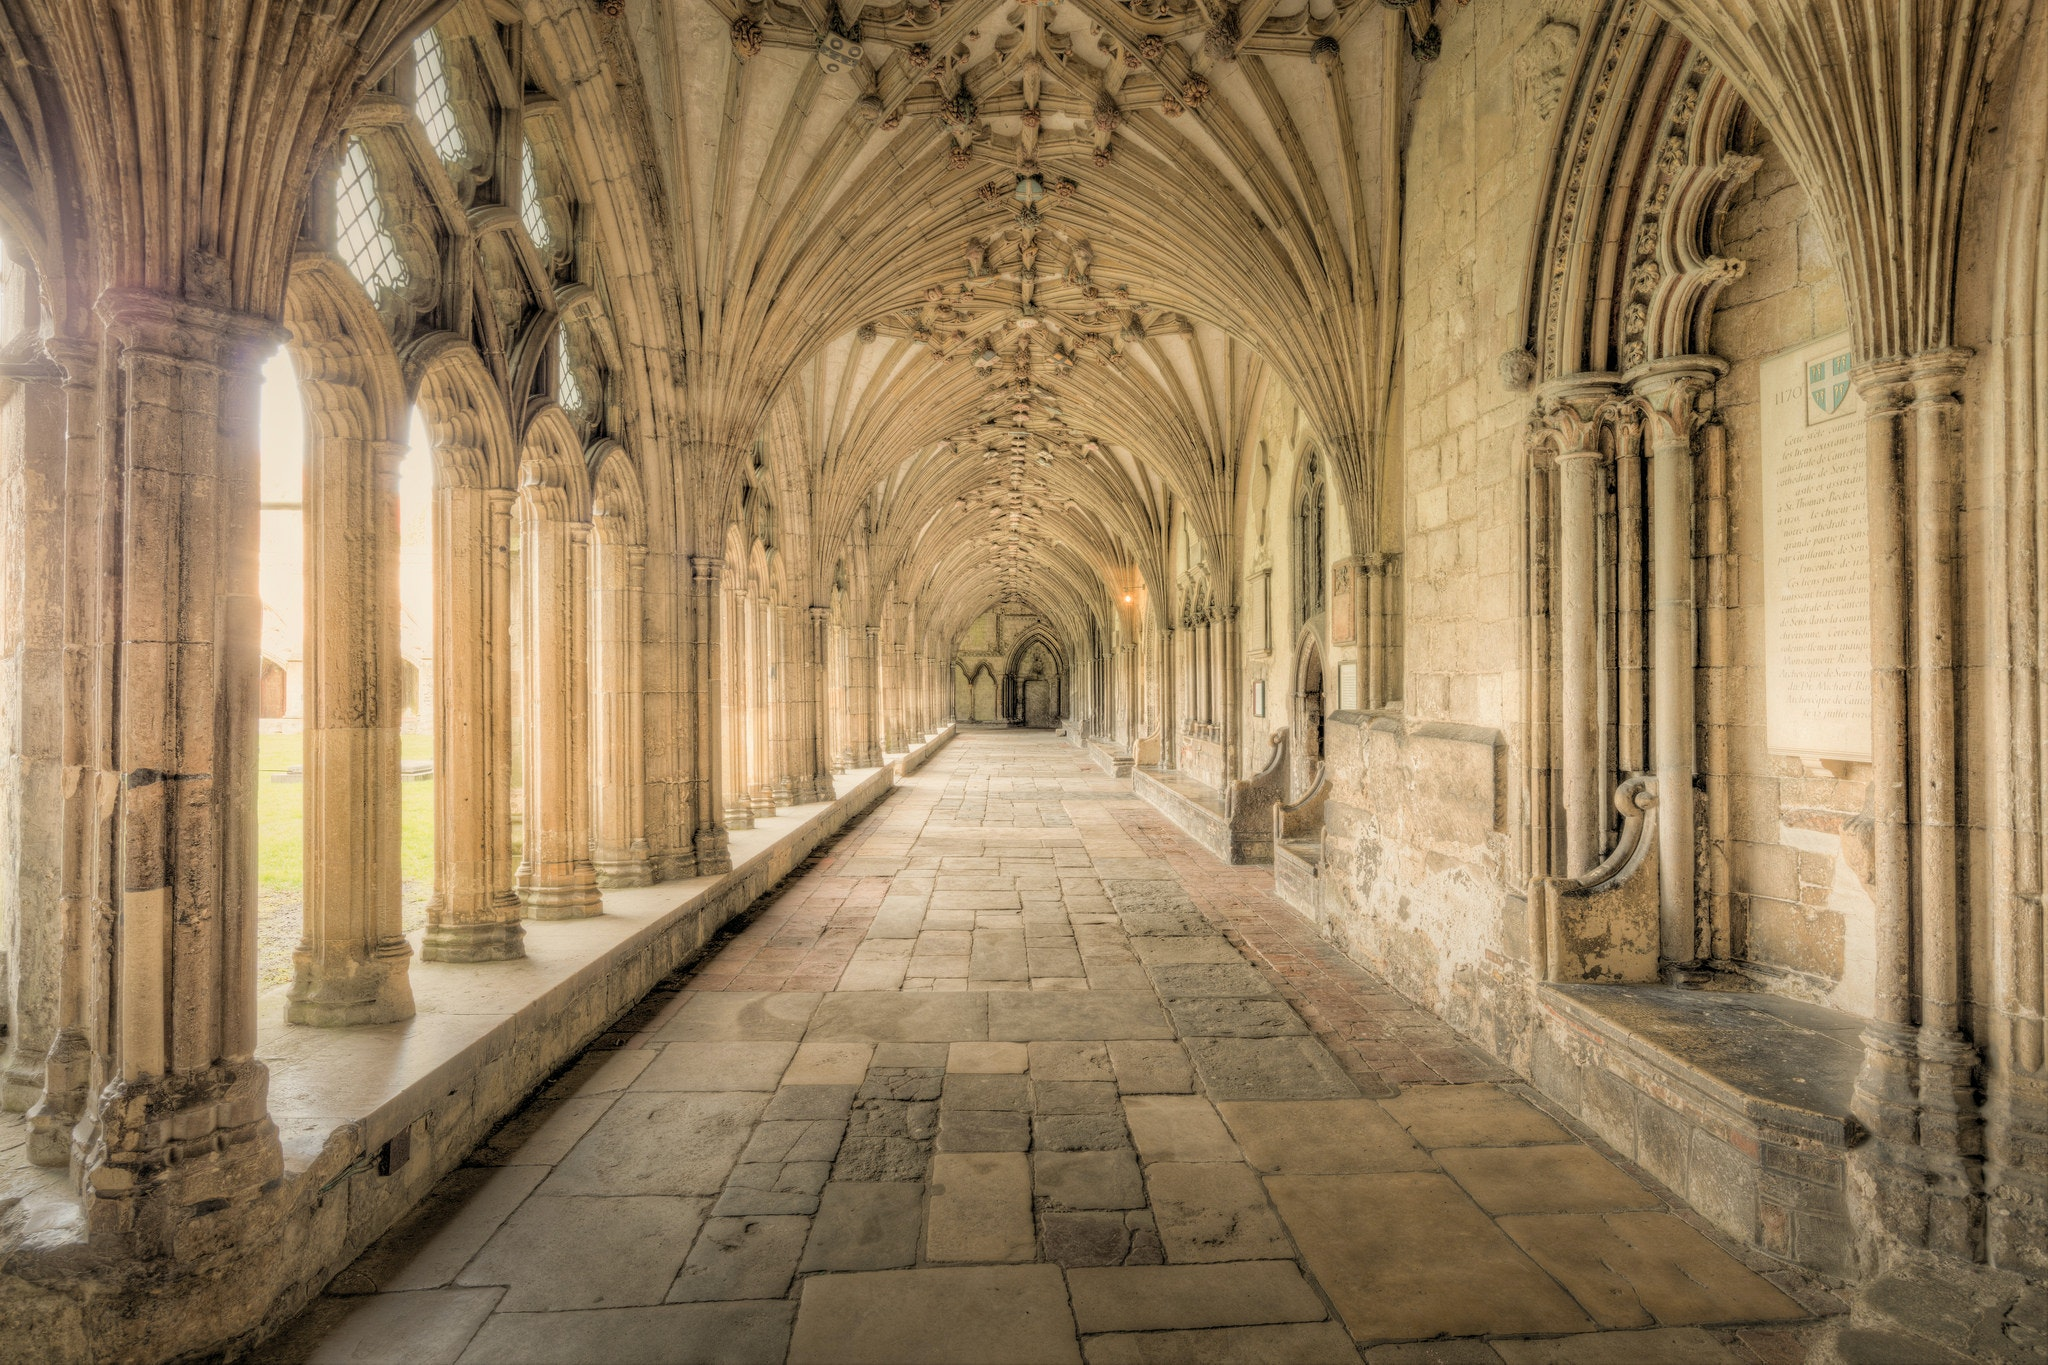 The cloisters of Canterbury Cathedral